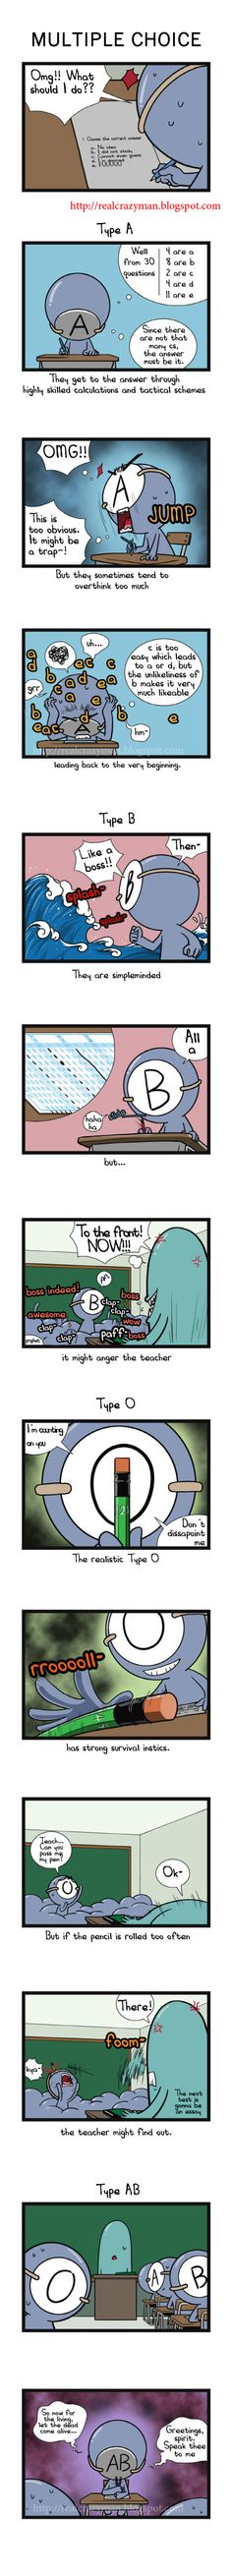 blood type comic - So accurate, I'm a total type A! hahah